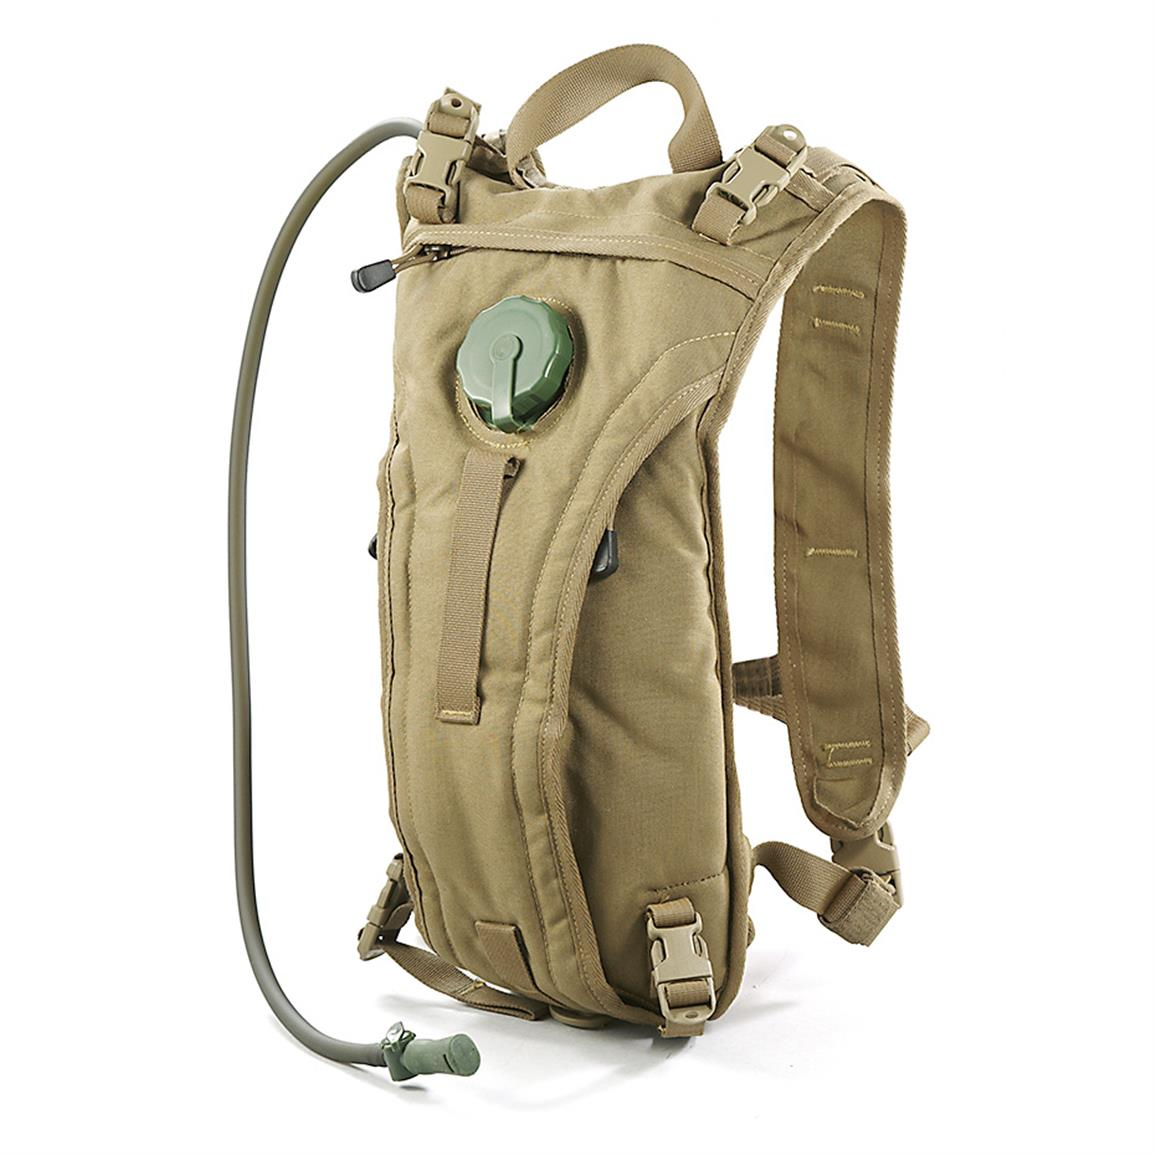 New Hydration Pack, Coyote Tan